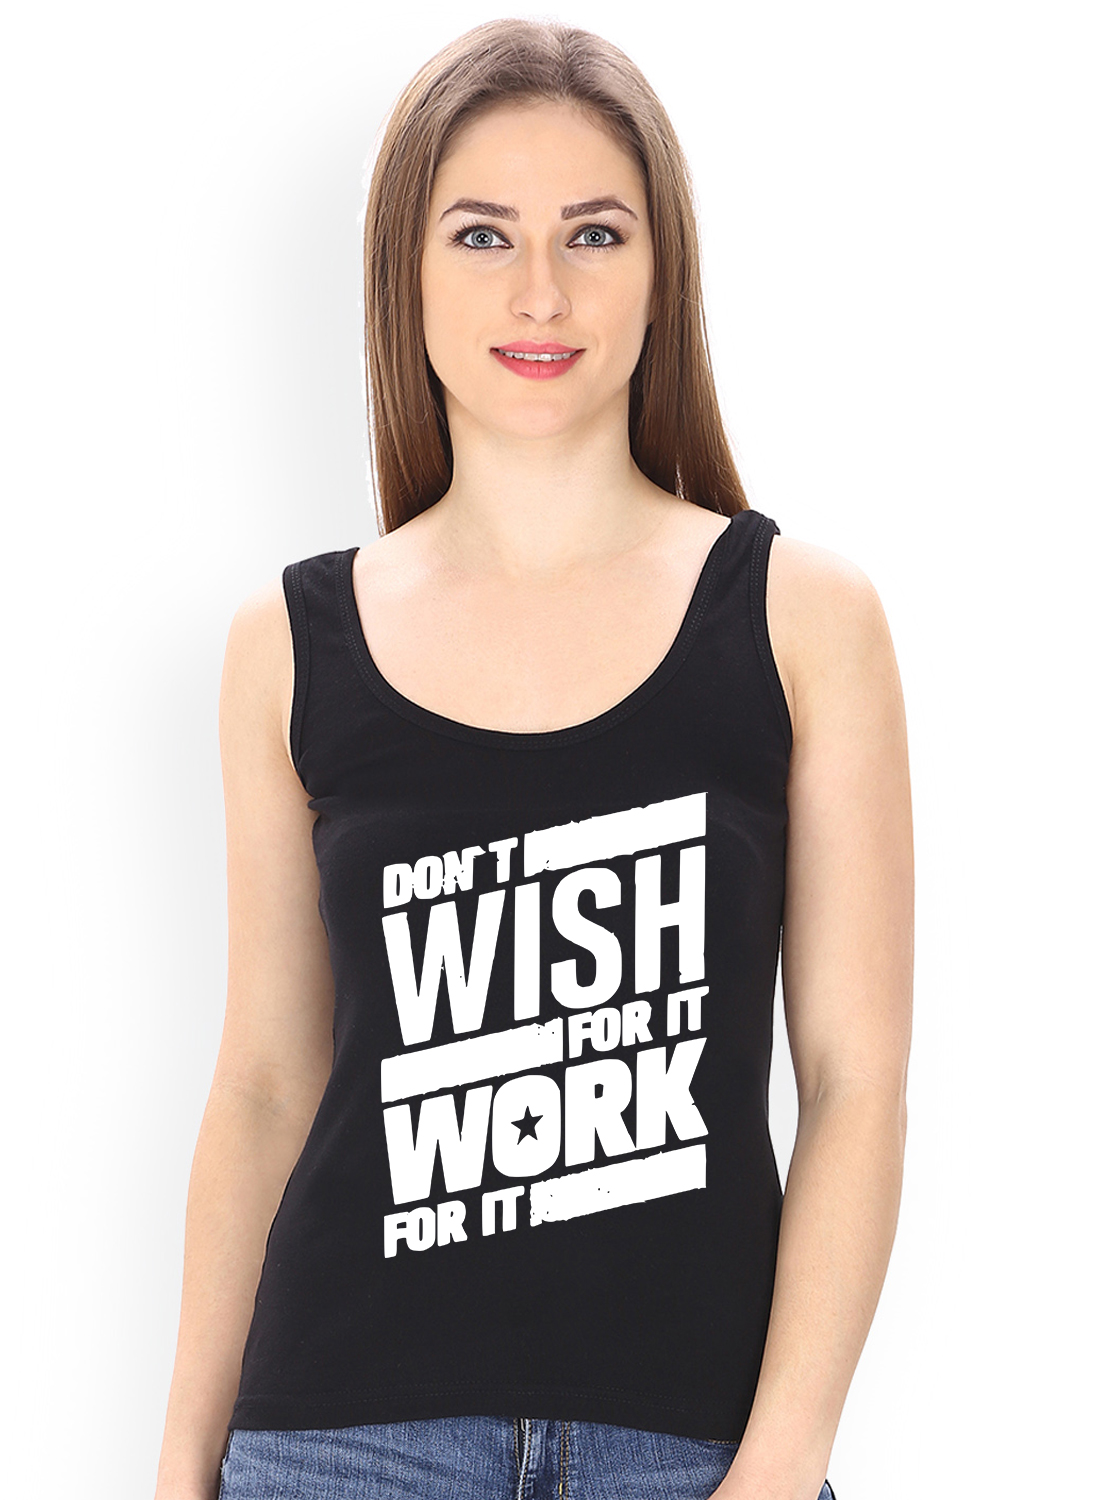 Caseria Women's Cotton Biowash Graphic Printed Tank Top - Don?t Wish (Black, L)